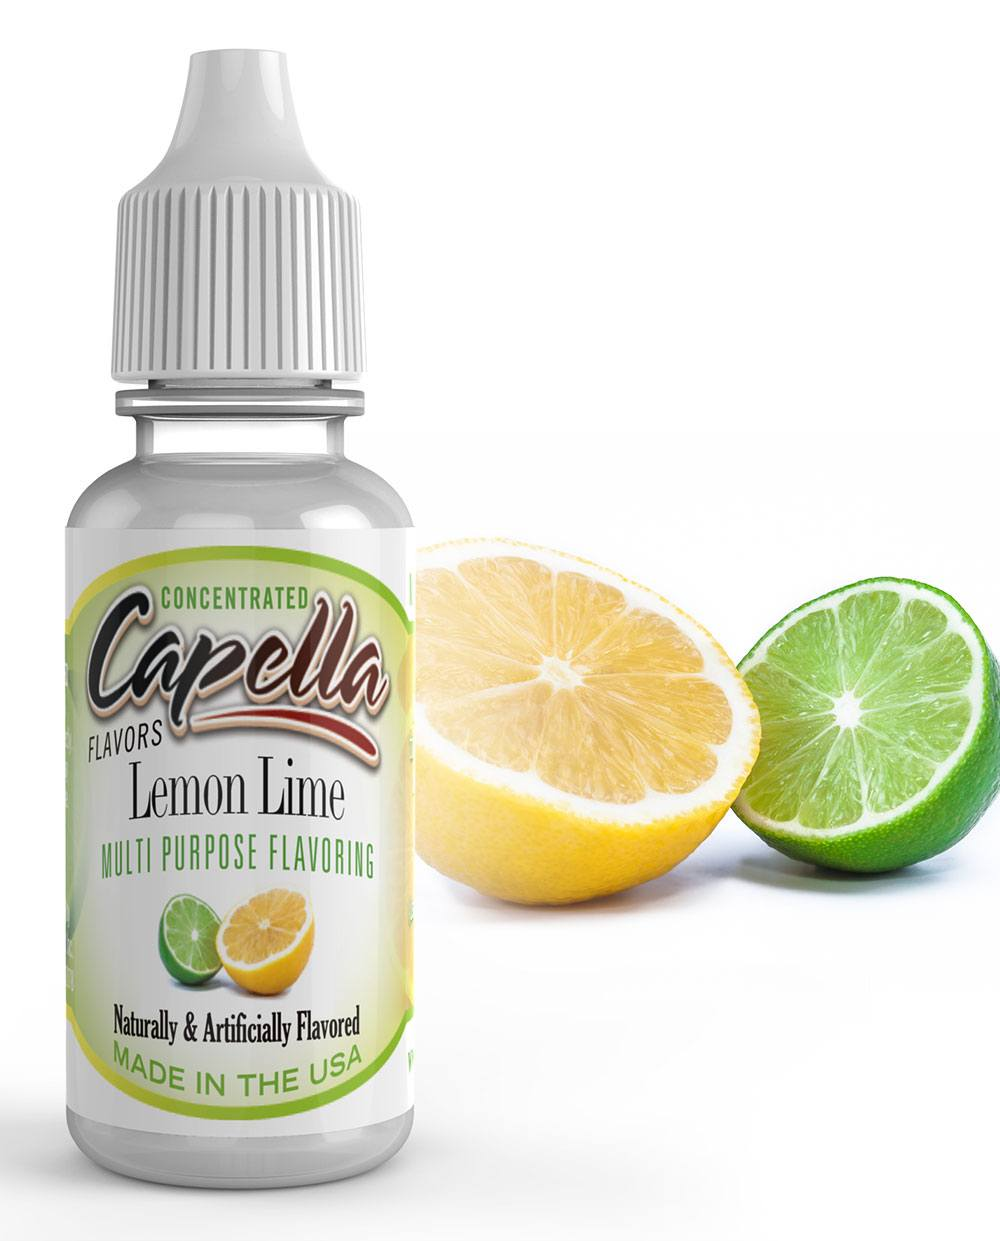 Capella Lemon Lime Flavor